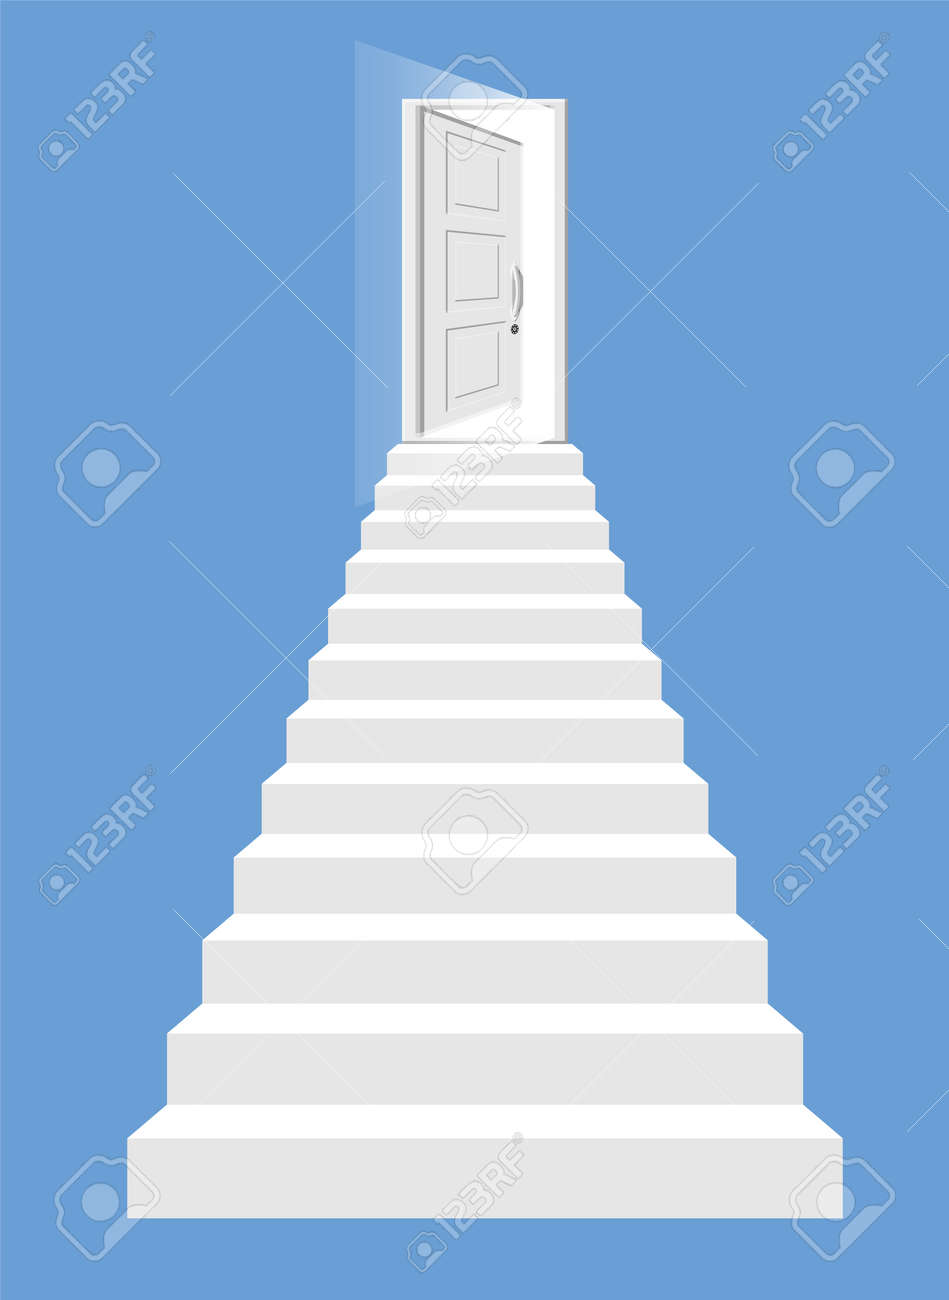 White stairs and open door isolated. Steps up to the shining entry. Concept of success, achievement, stairway to heaven. Symbol of motivation, development. Flat vector illustration - 150643507